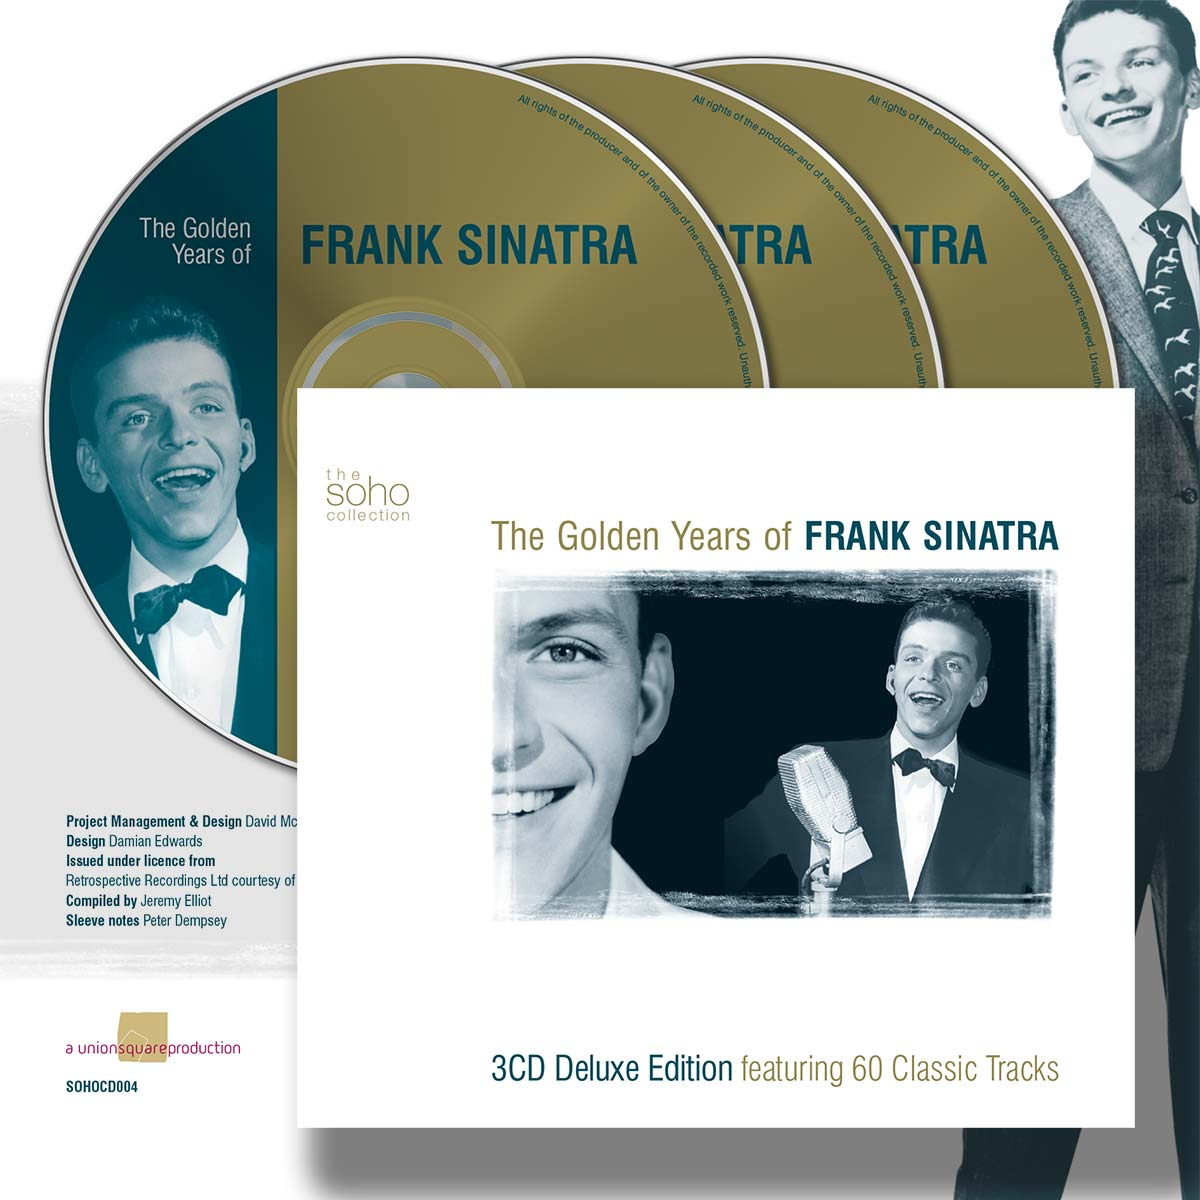 Union Square Music, The Golden Years OfFrank Sinatra